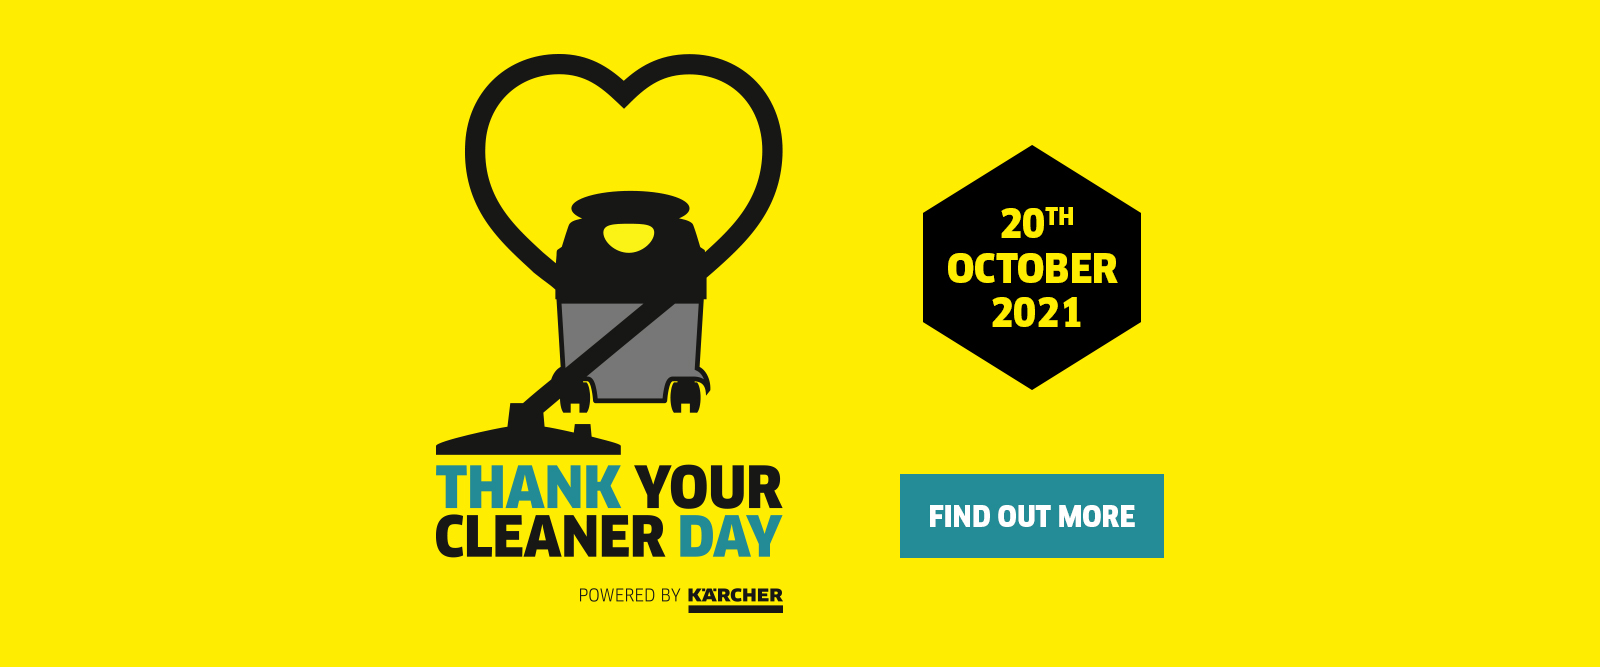 Thank your cleaner day 2021